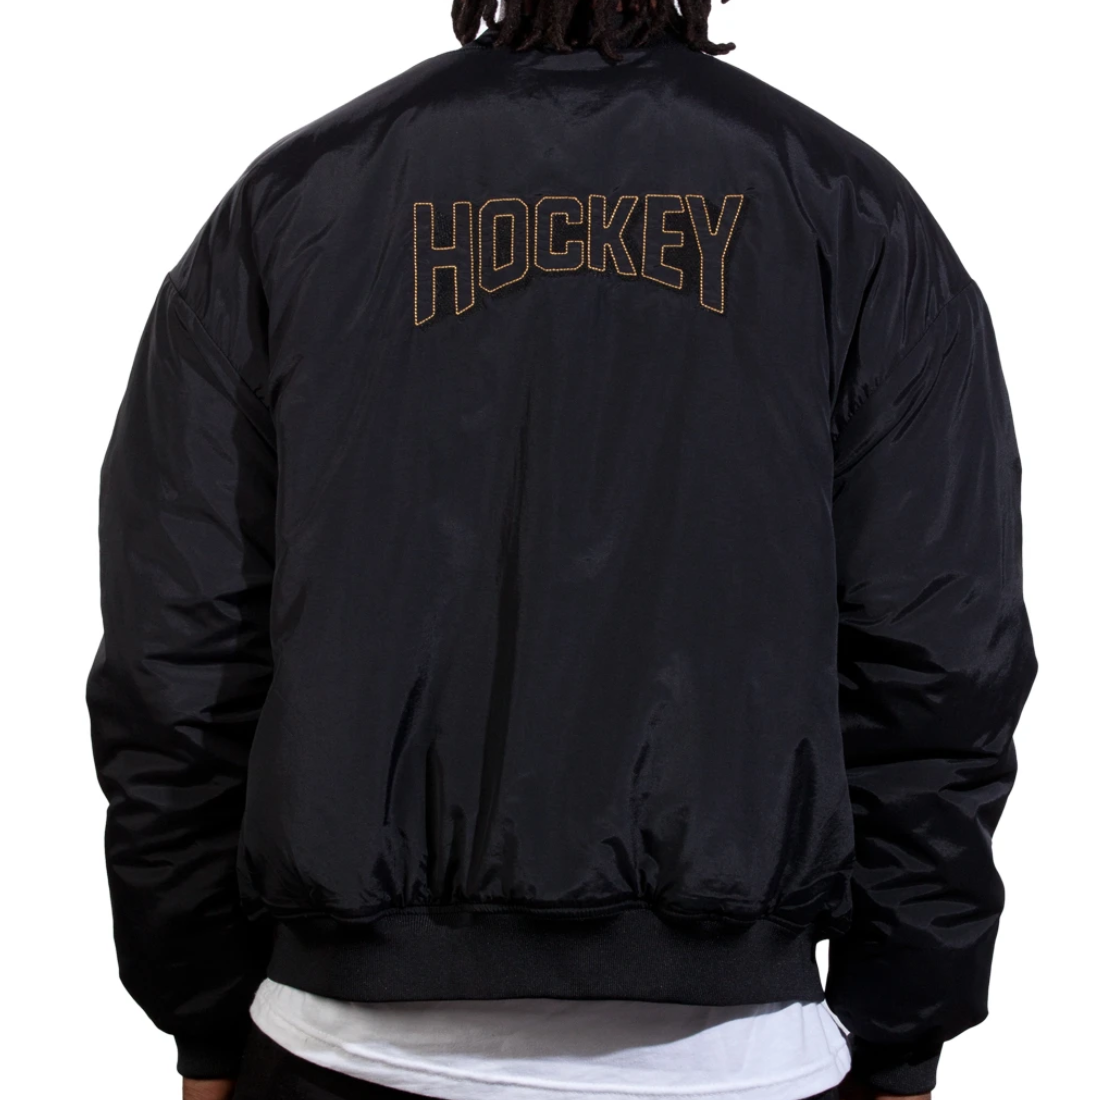 【Hockey】Starter Jacket - Black